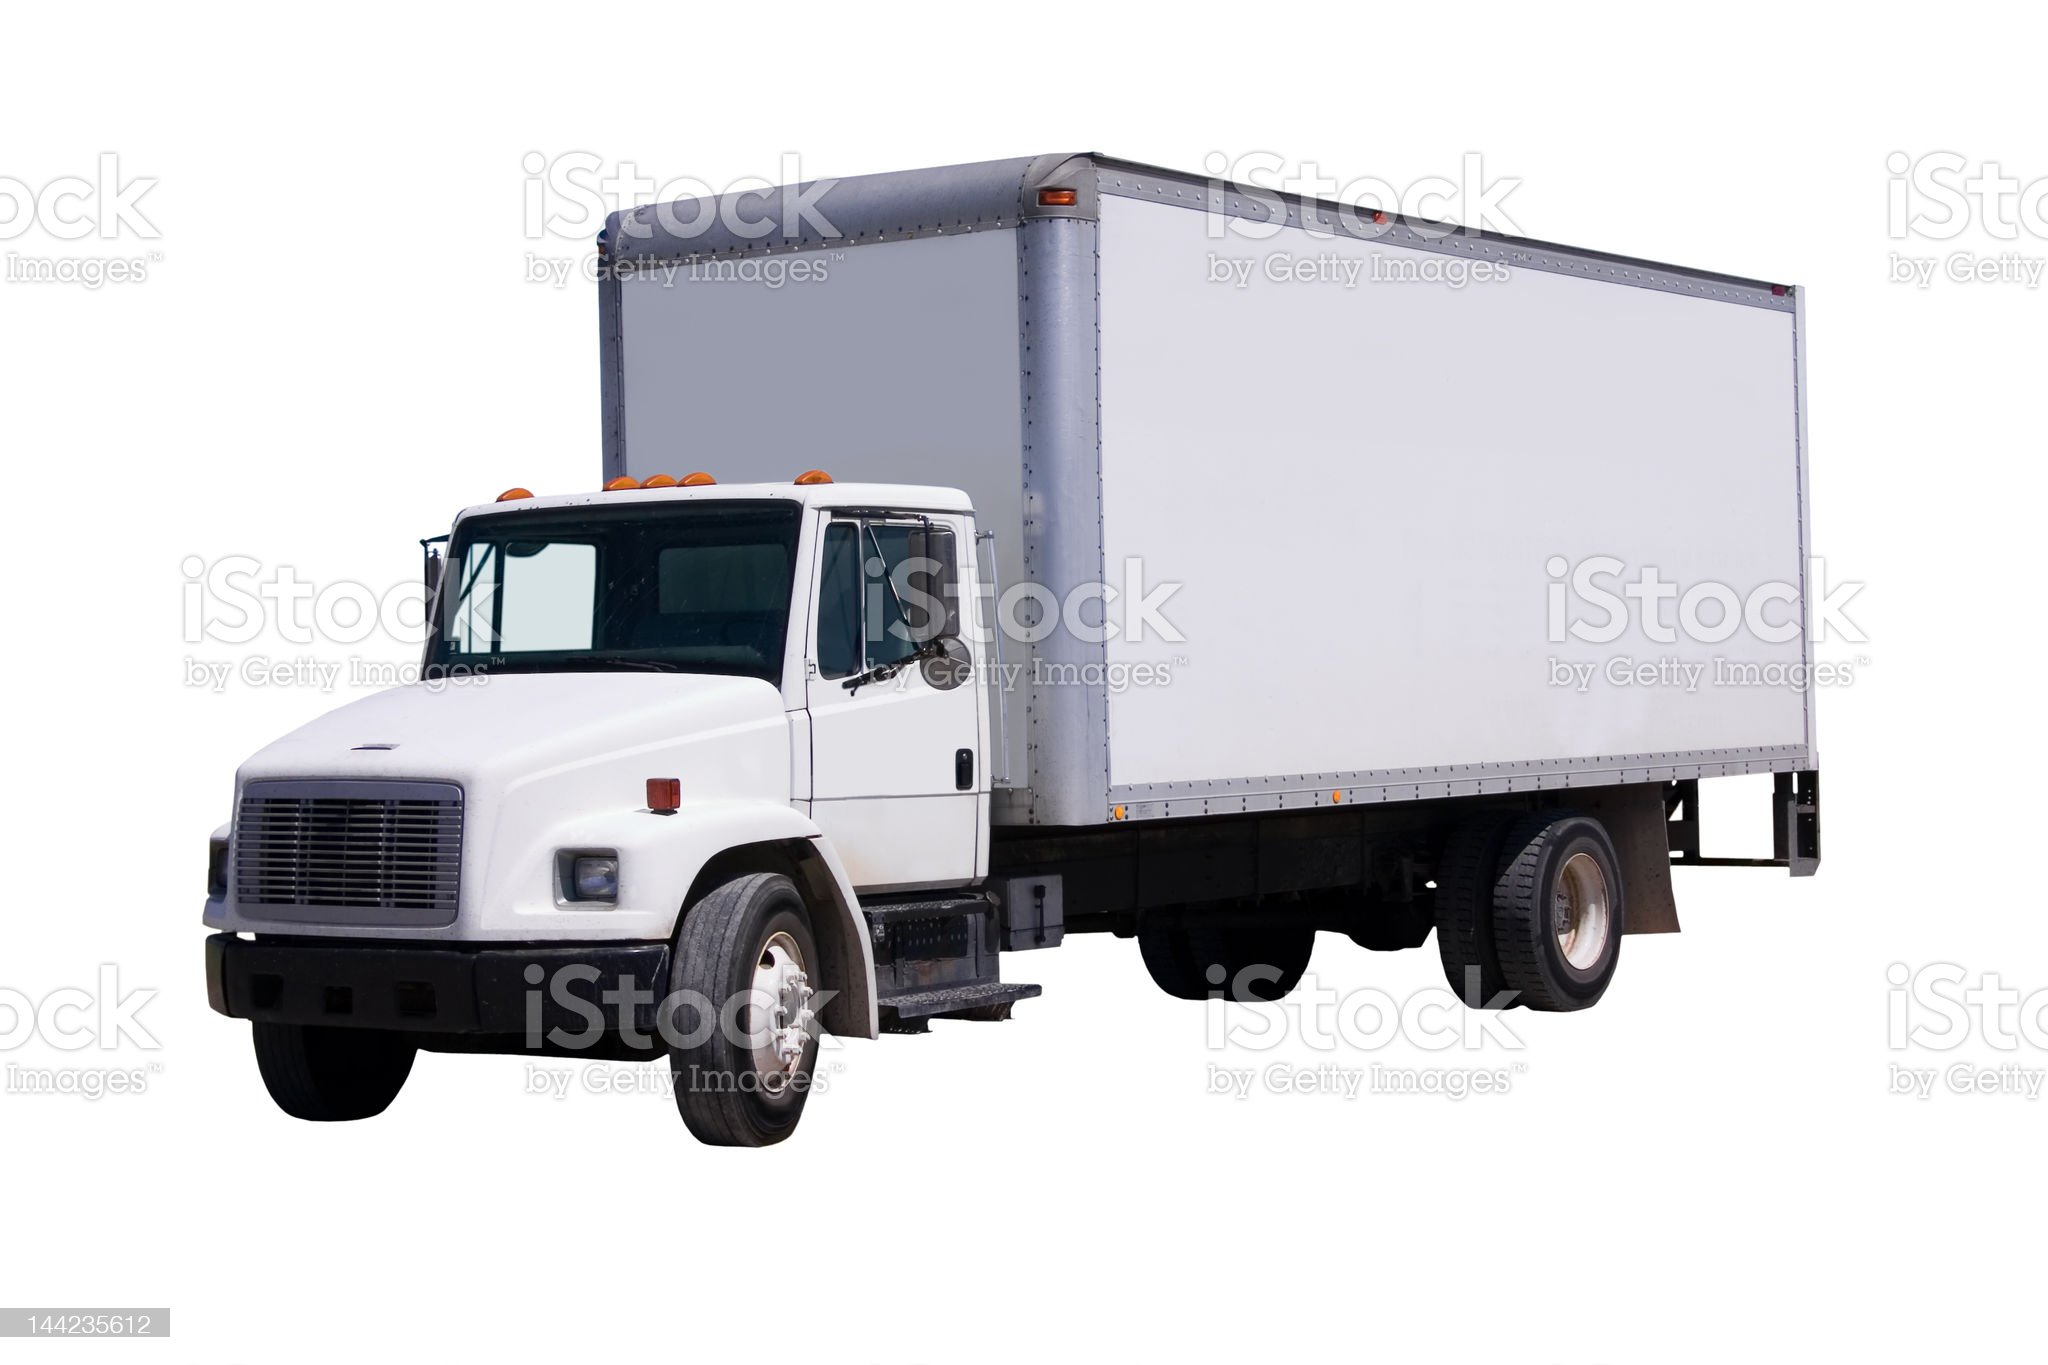 White Delivery Truck isolaated royalty-free stock photo